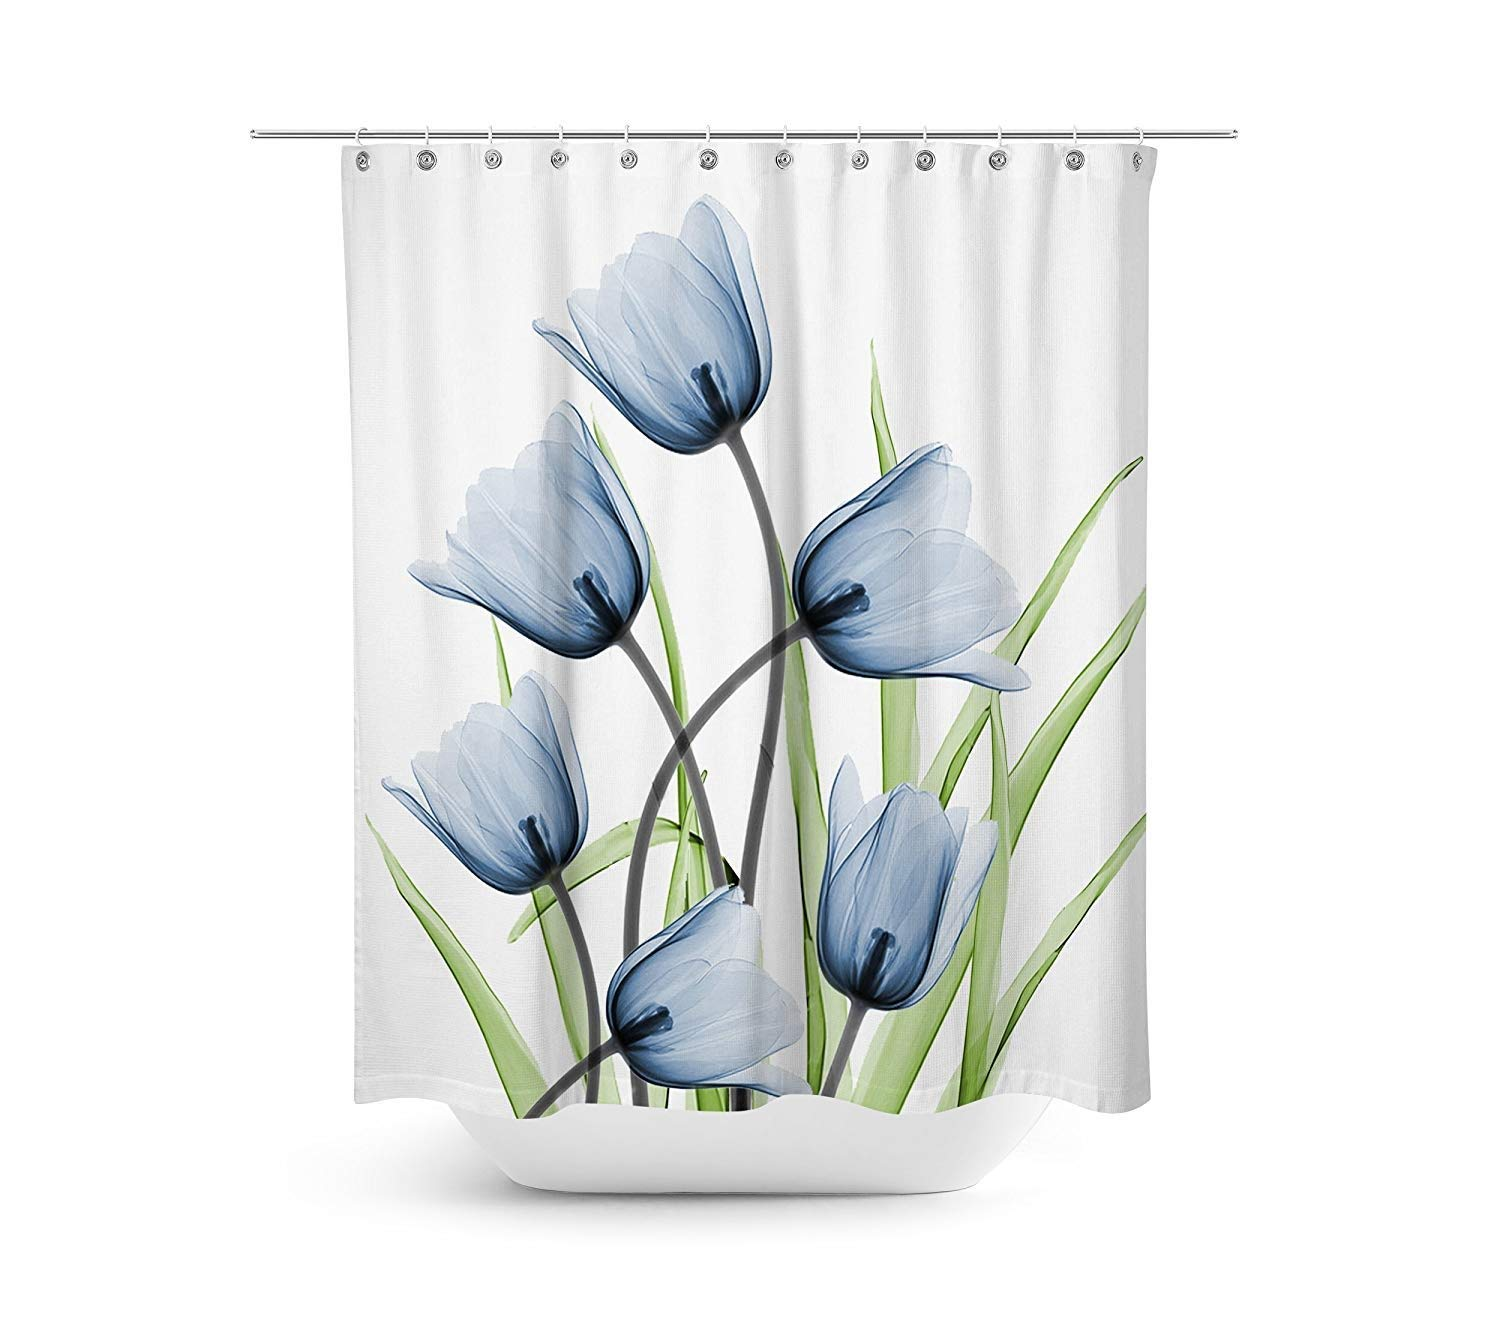 Get Quotations Floral Fabric Shower Curtain Set 72x 72 Thick Bathroom CurtainsWhite With